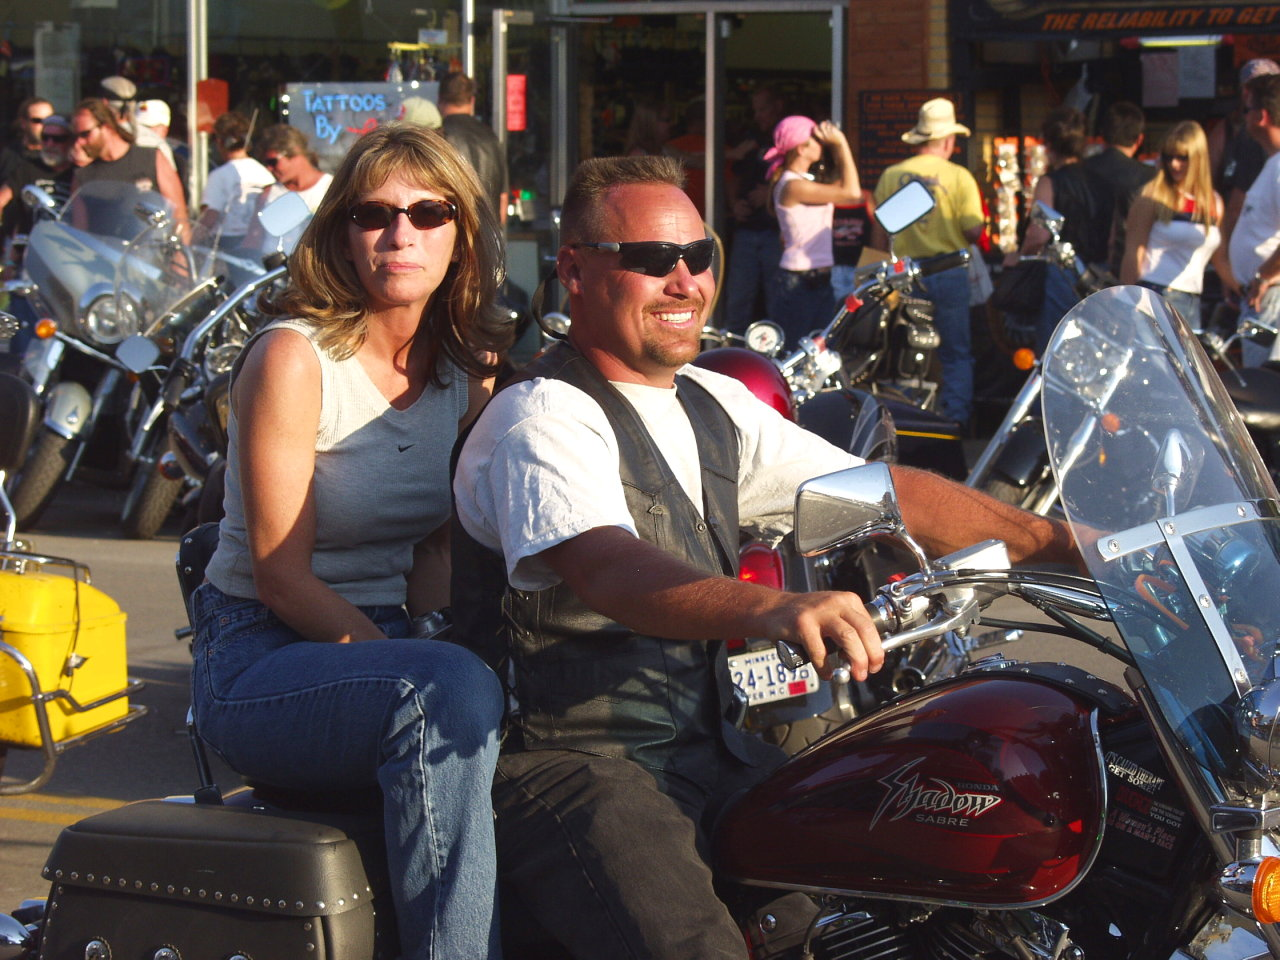 Smiling motorcycle people